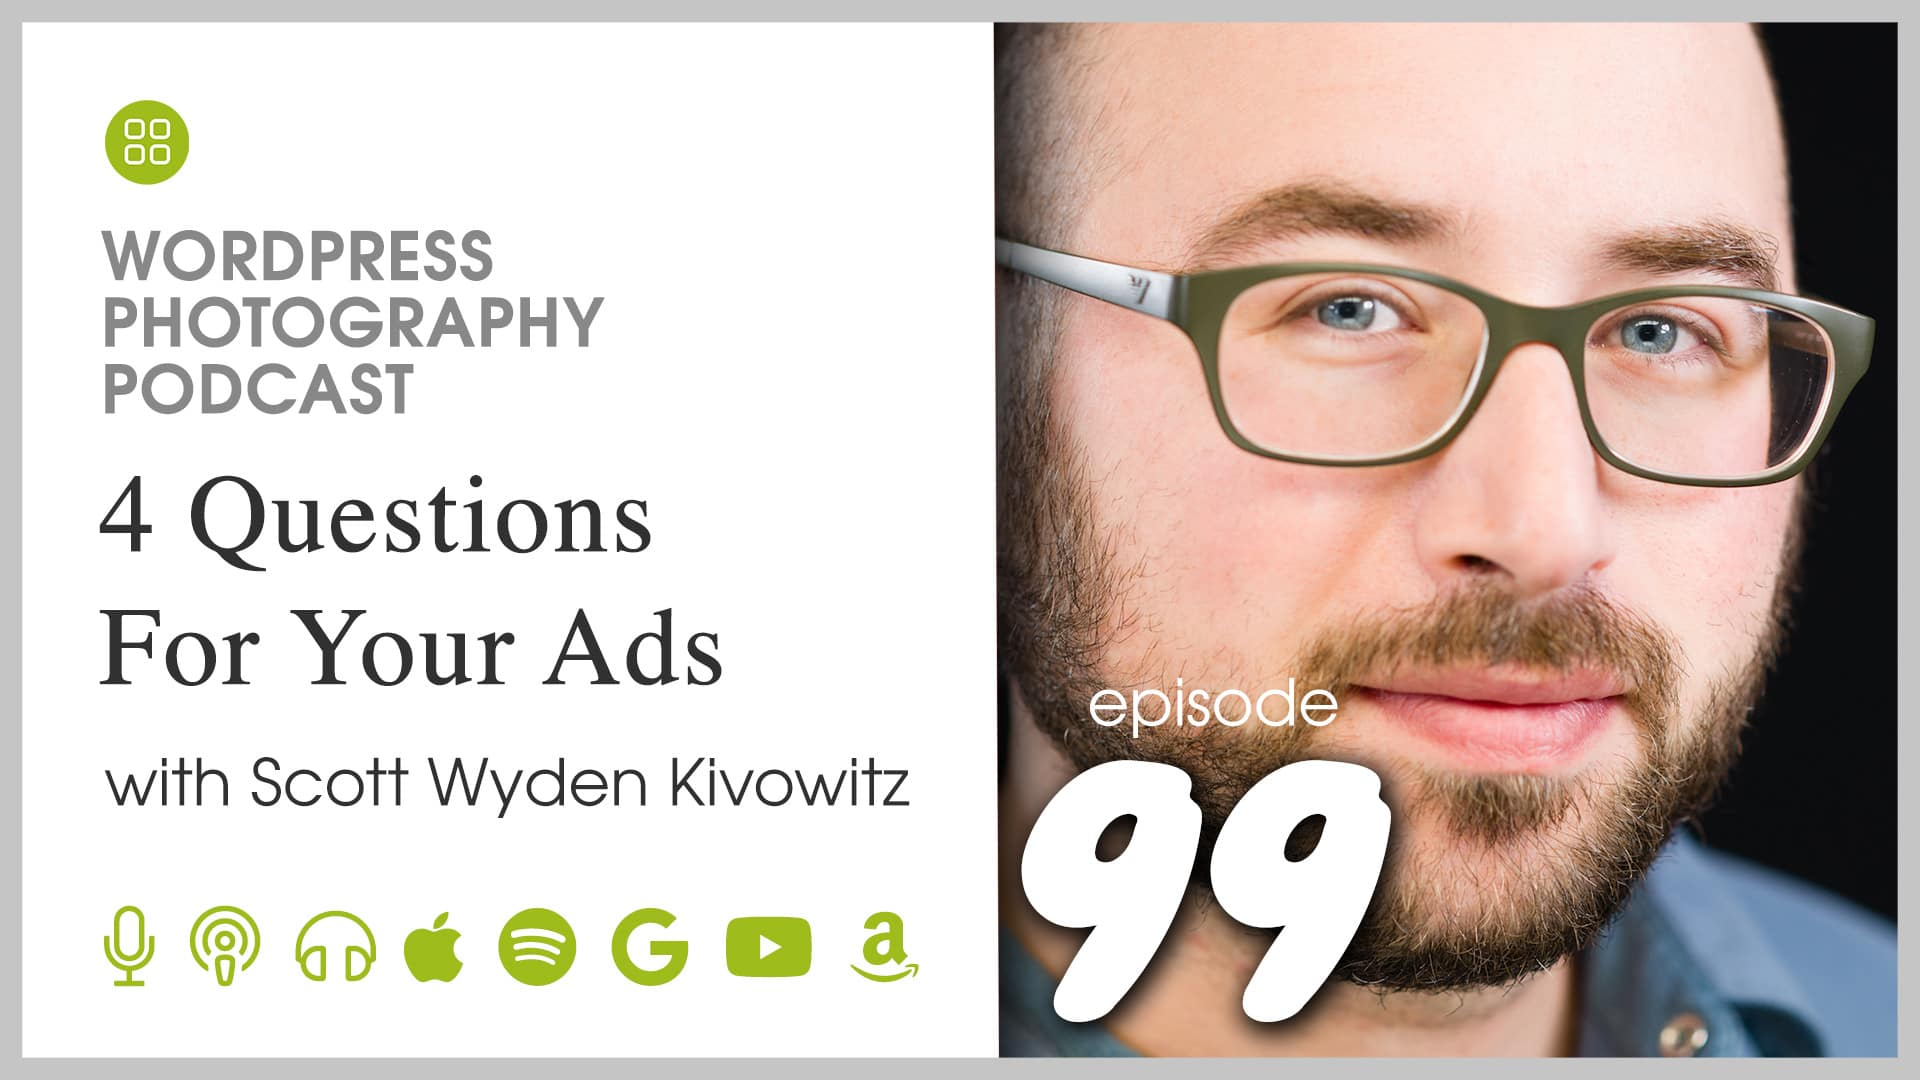 Episode 99 – 4 Questions For Your Ads